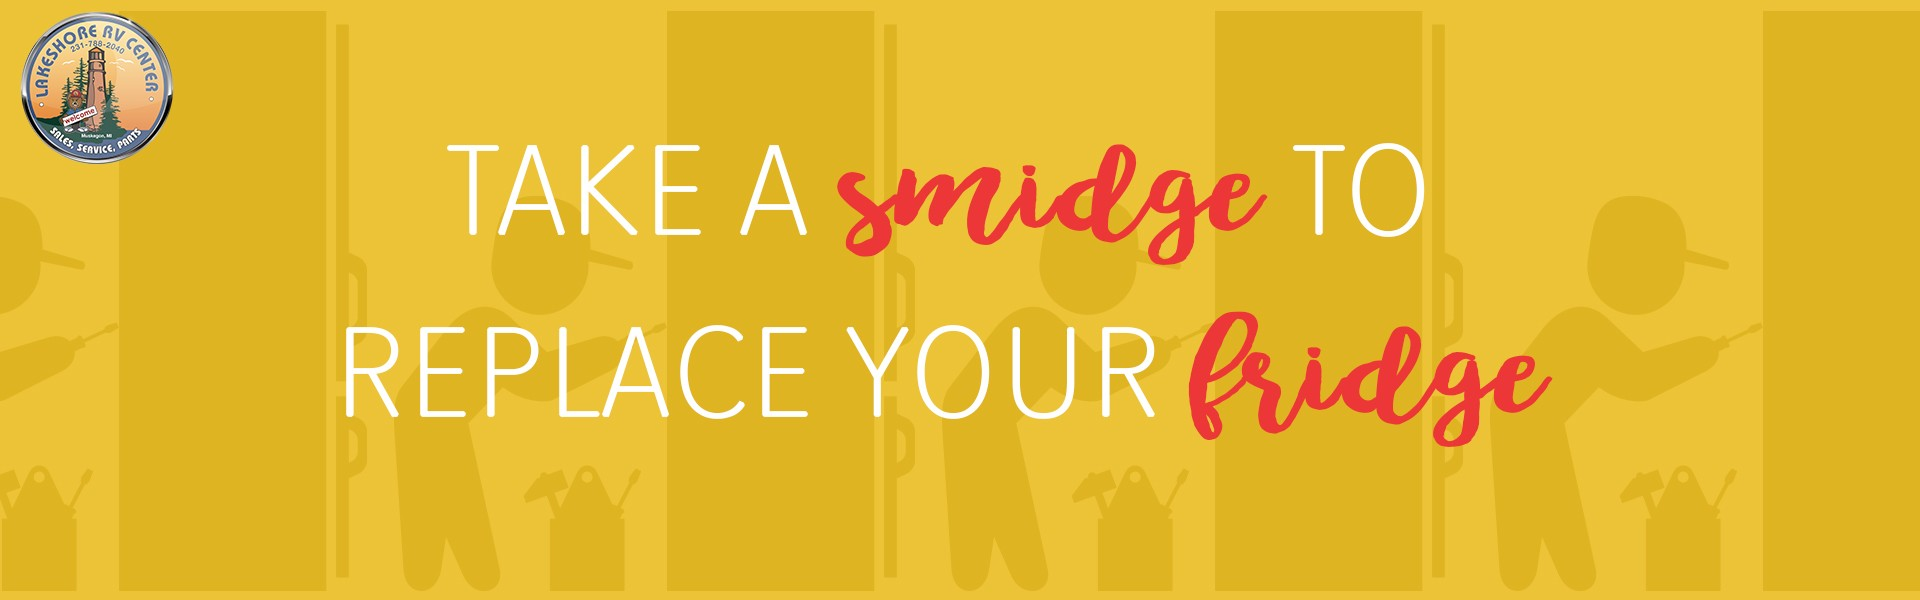 take a smidge to replace your fridge